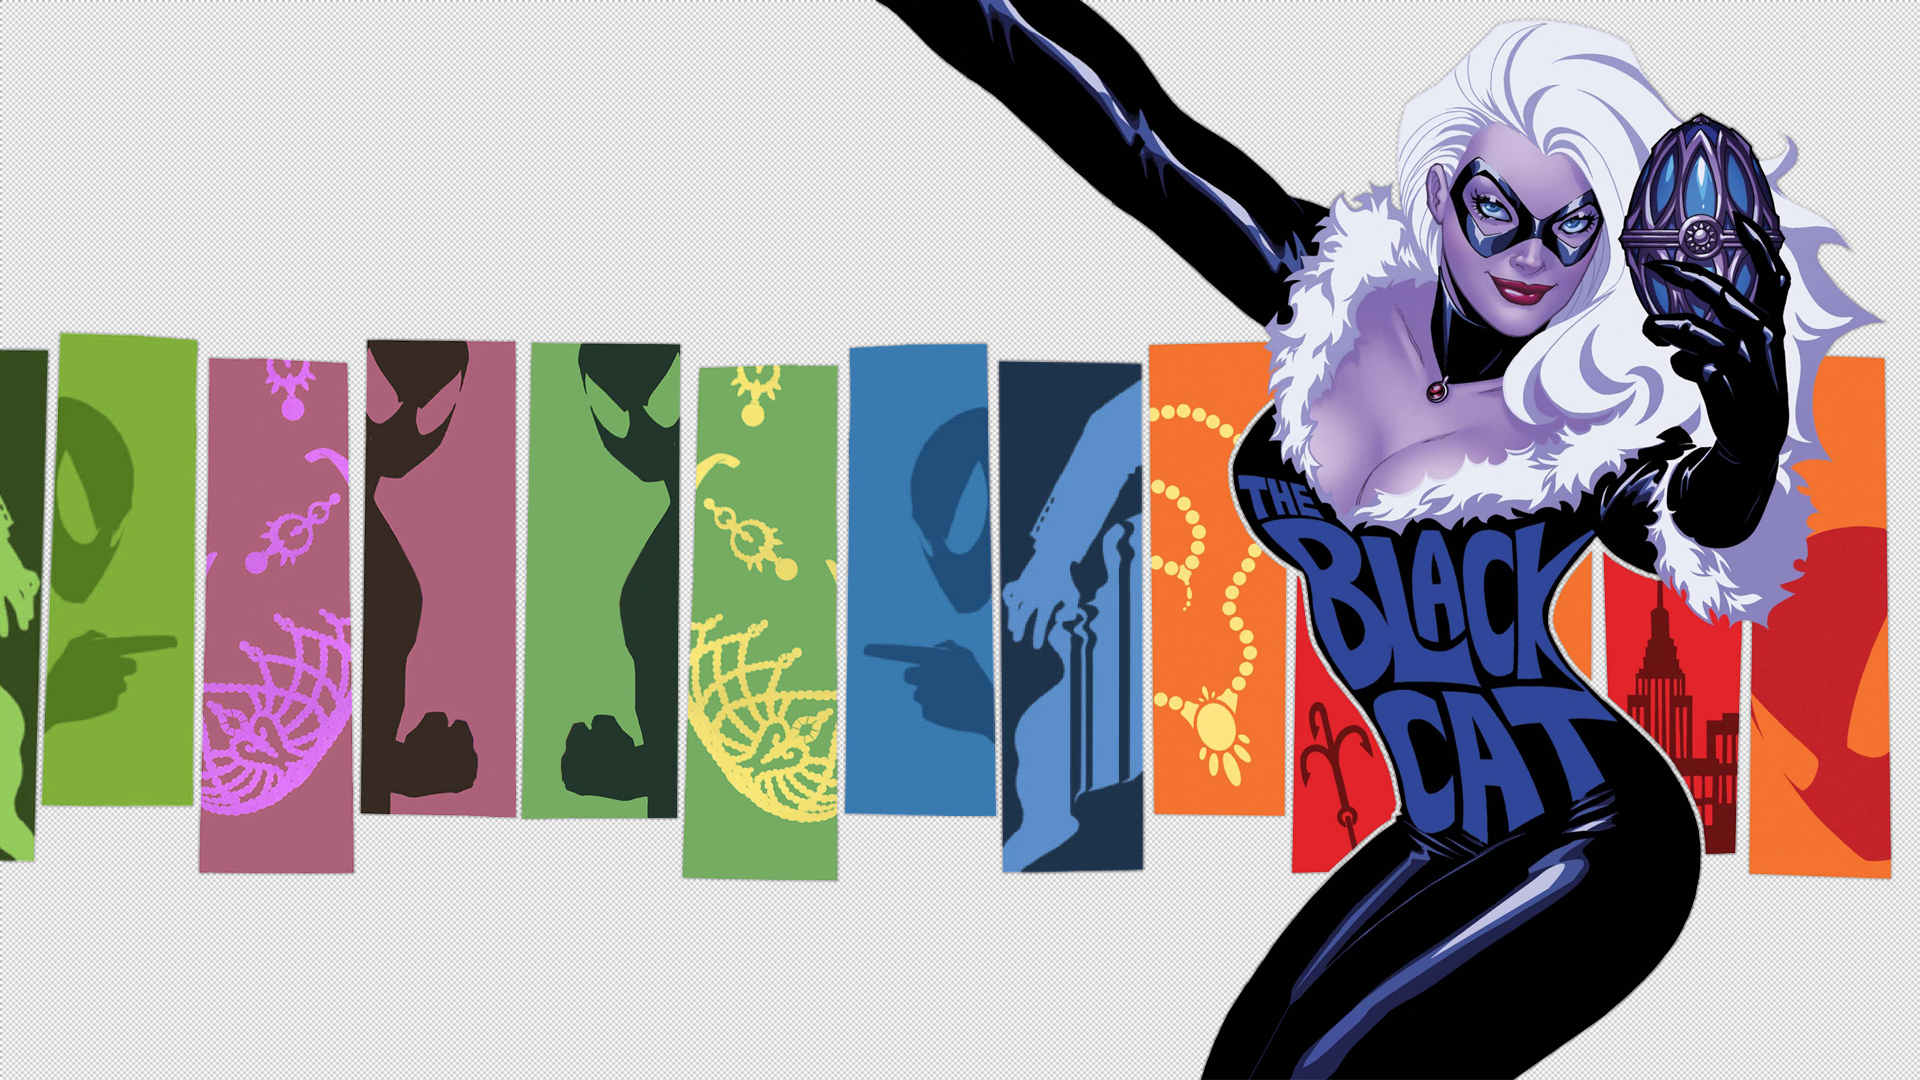 Black Cat Marvel wallpaper | 1920x1080 | 218887 | WallpaperUP